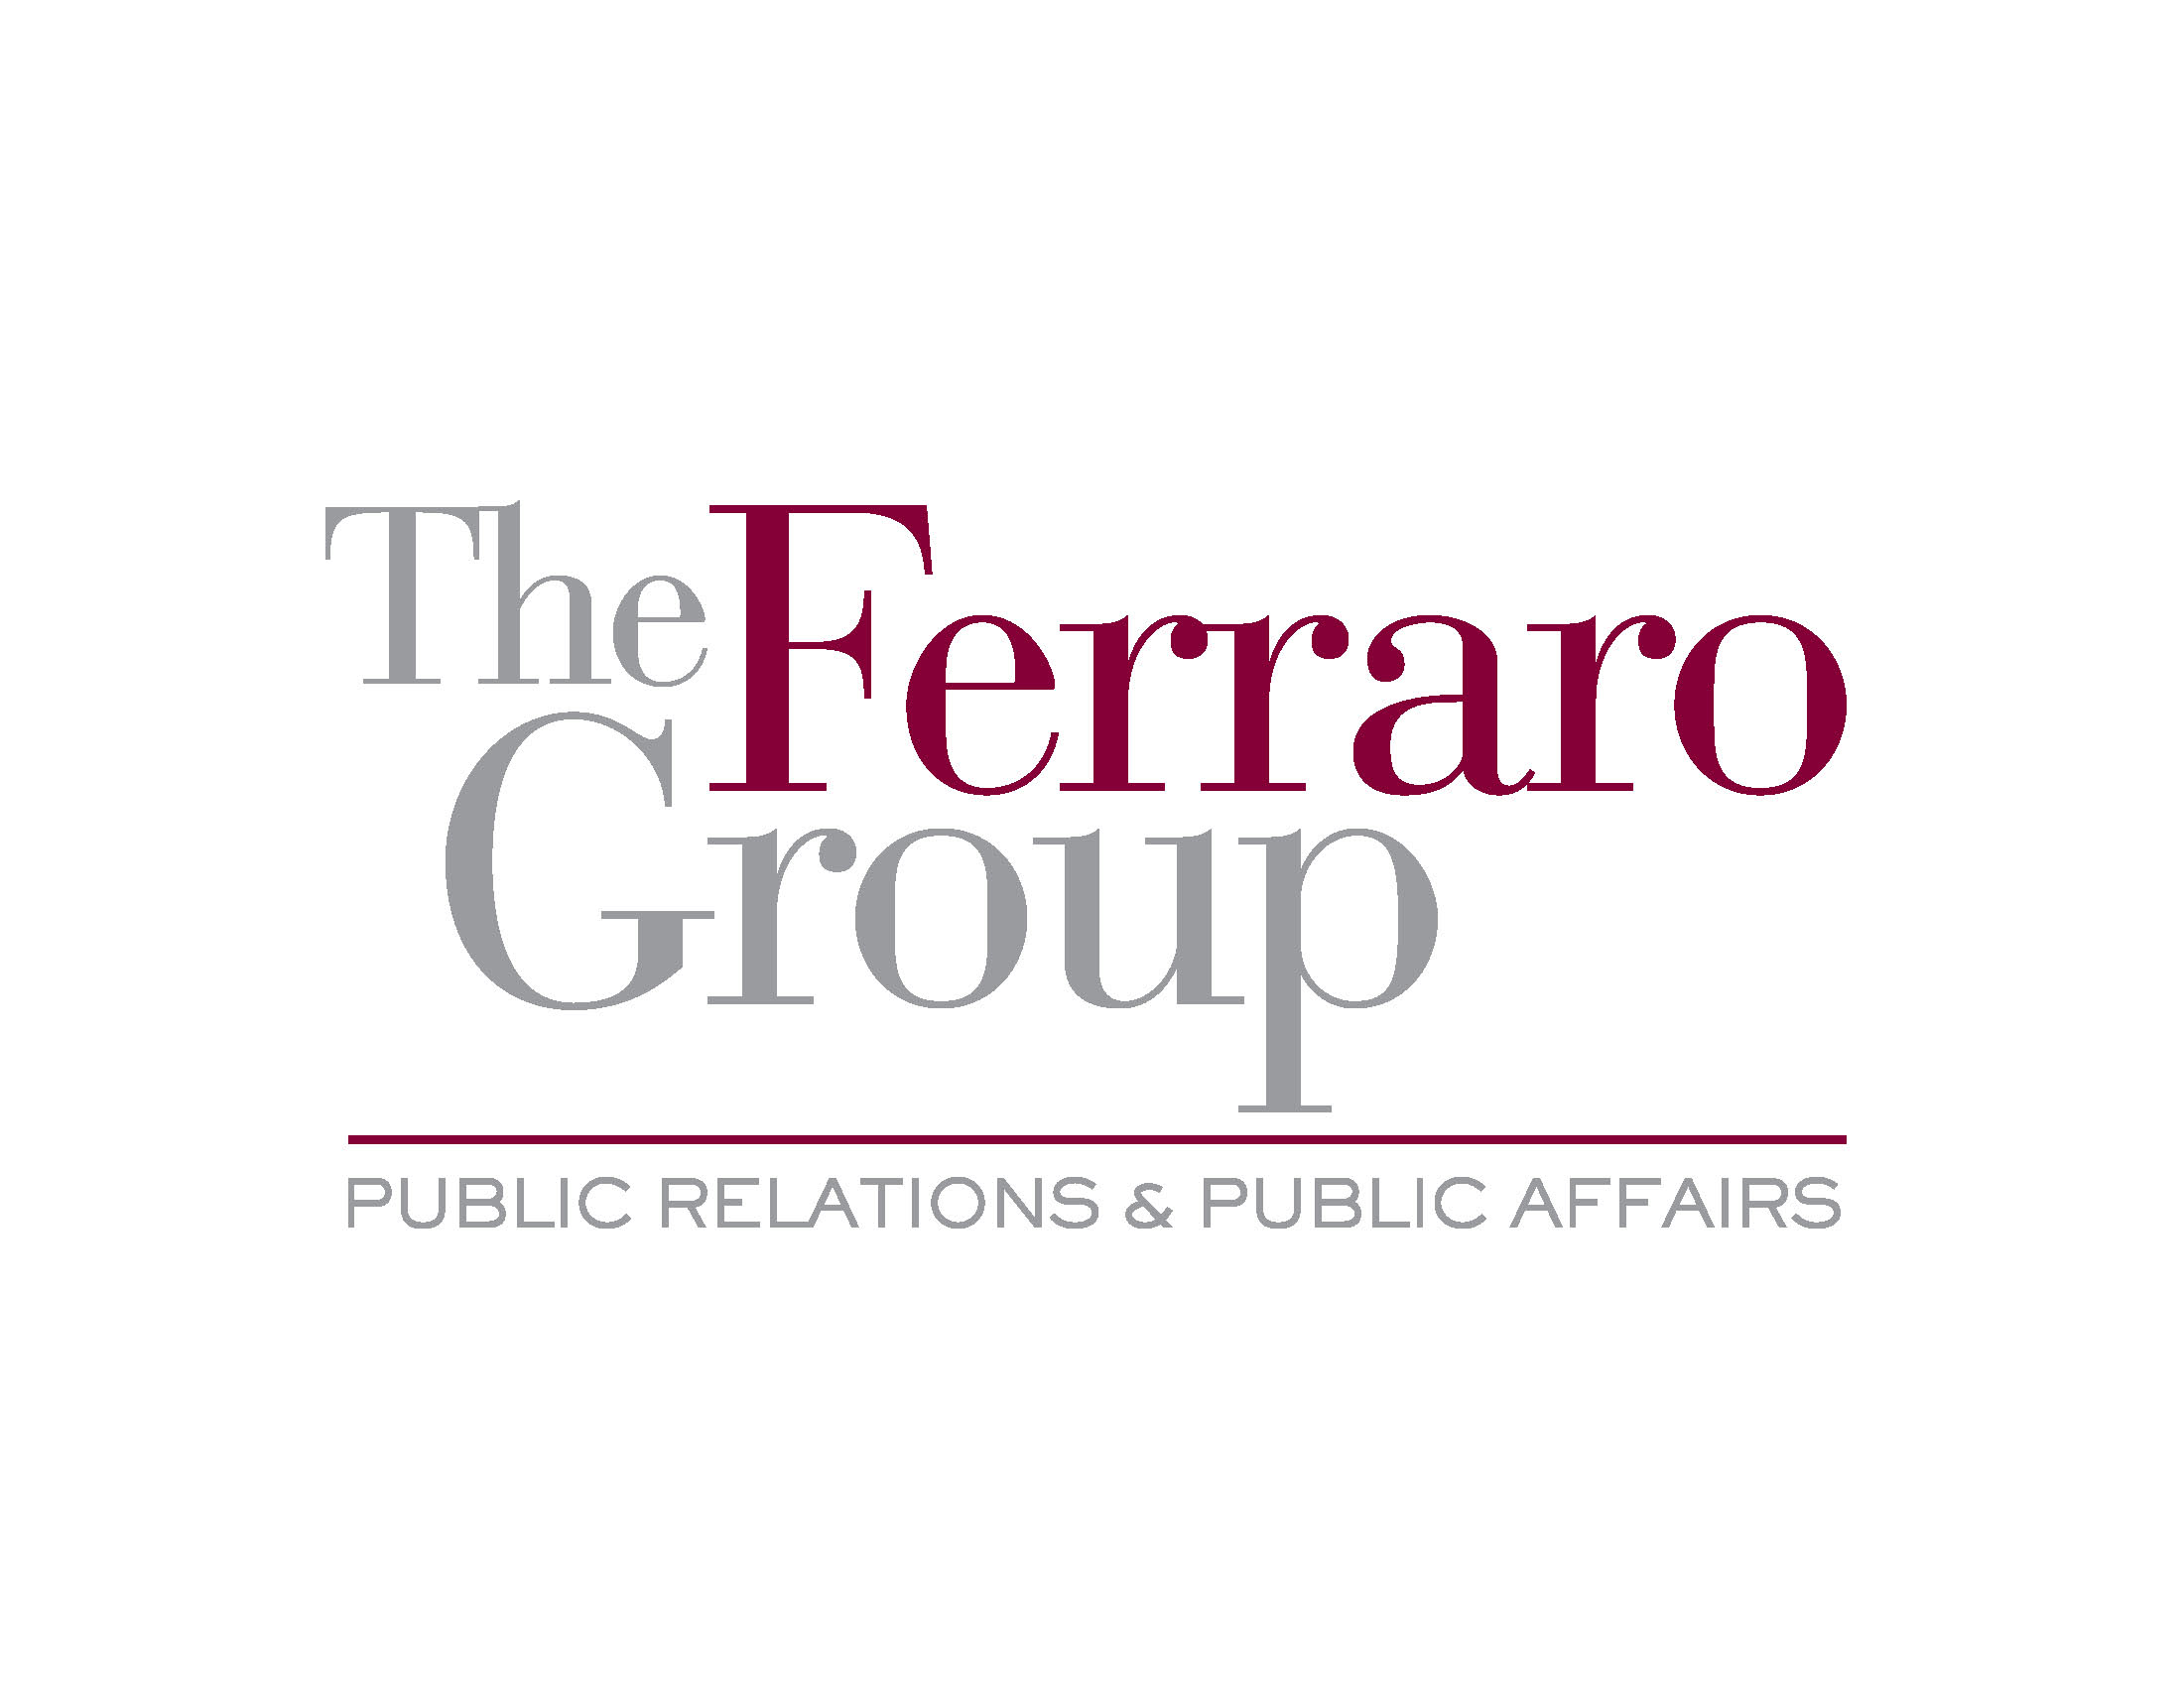 The Ferraro Group